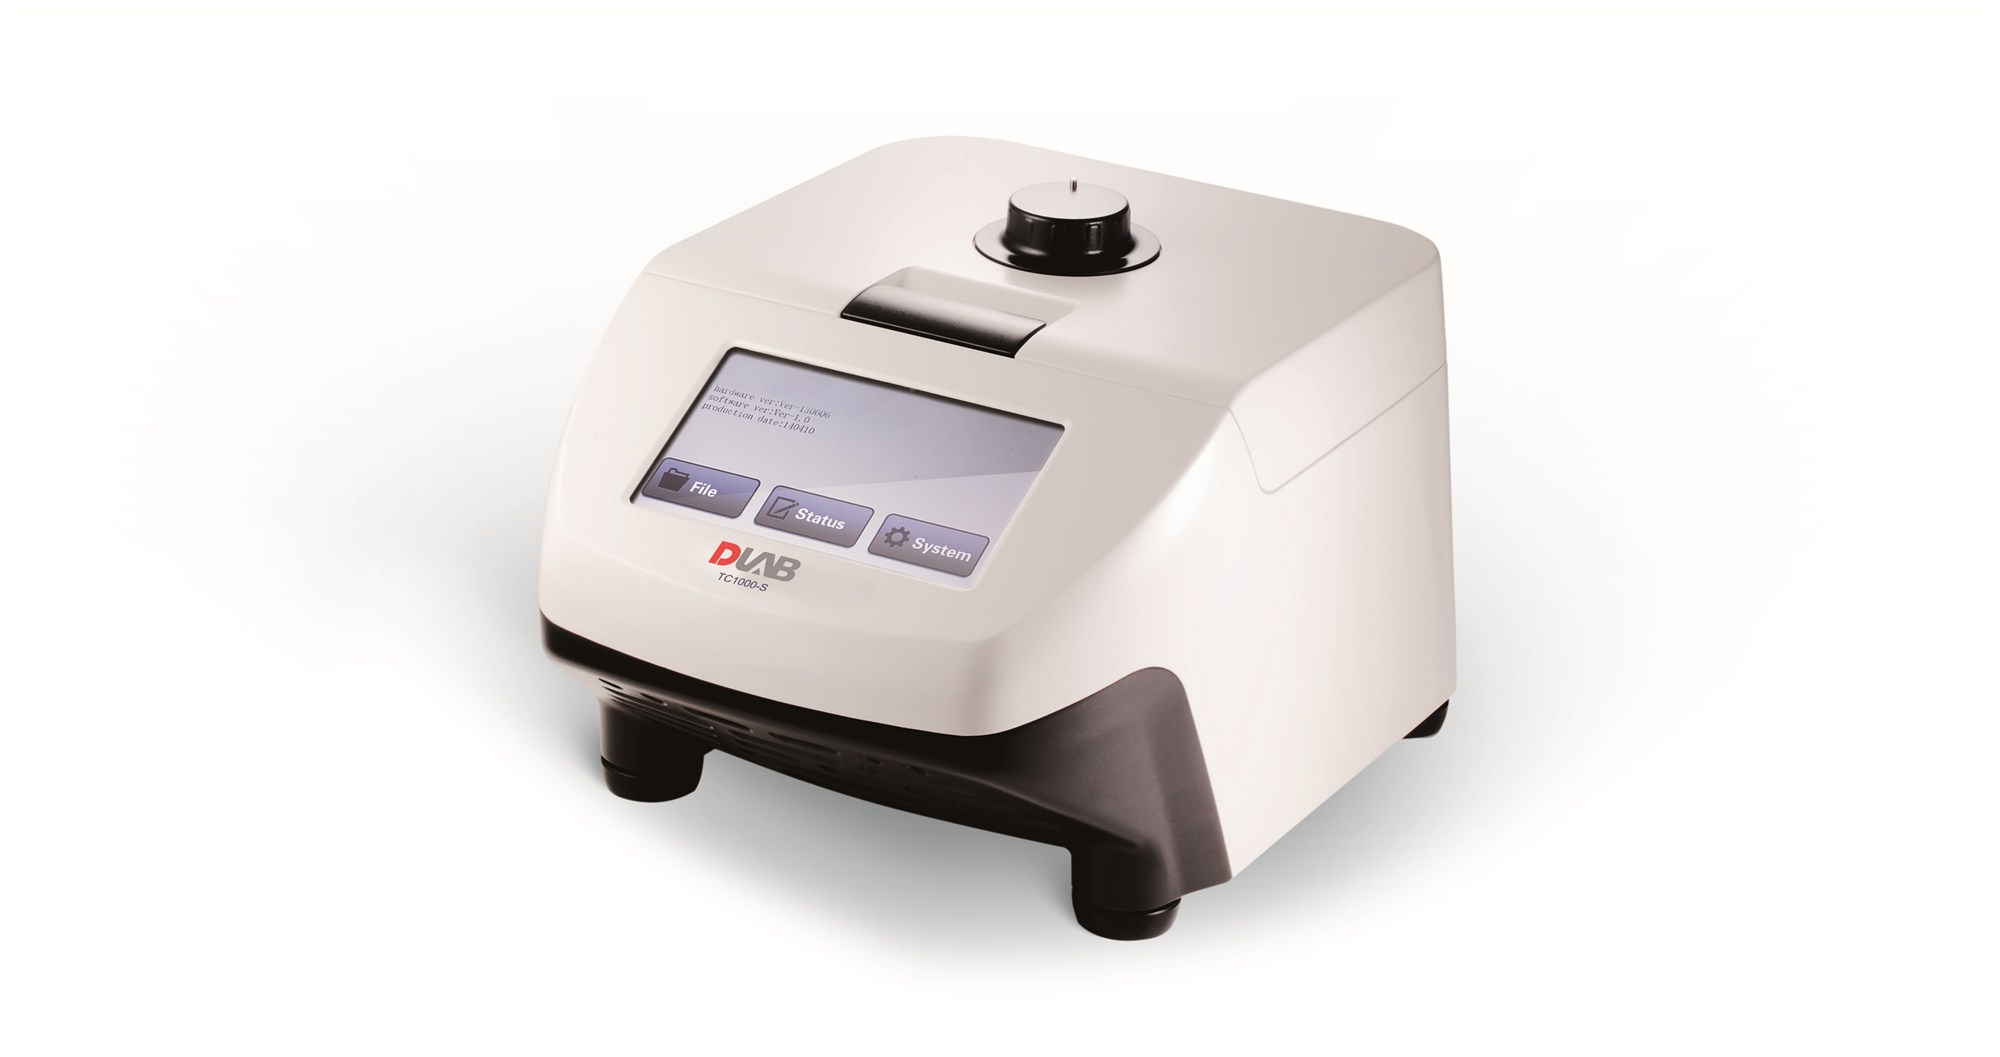 Standard Thermocycler TC1000-S PCR Gene Amplification Instrument DLab Thermal Cycler Standard Dragonlab Thermal controlStandard Thermocycler TC1000-S PCR Gene Amplification Instrument DLab Thermal Cycler Standard Dragonlab Thermal control